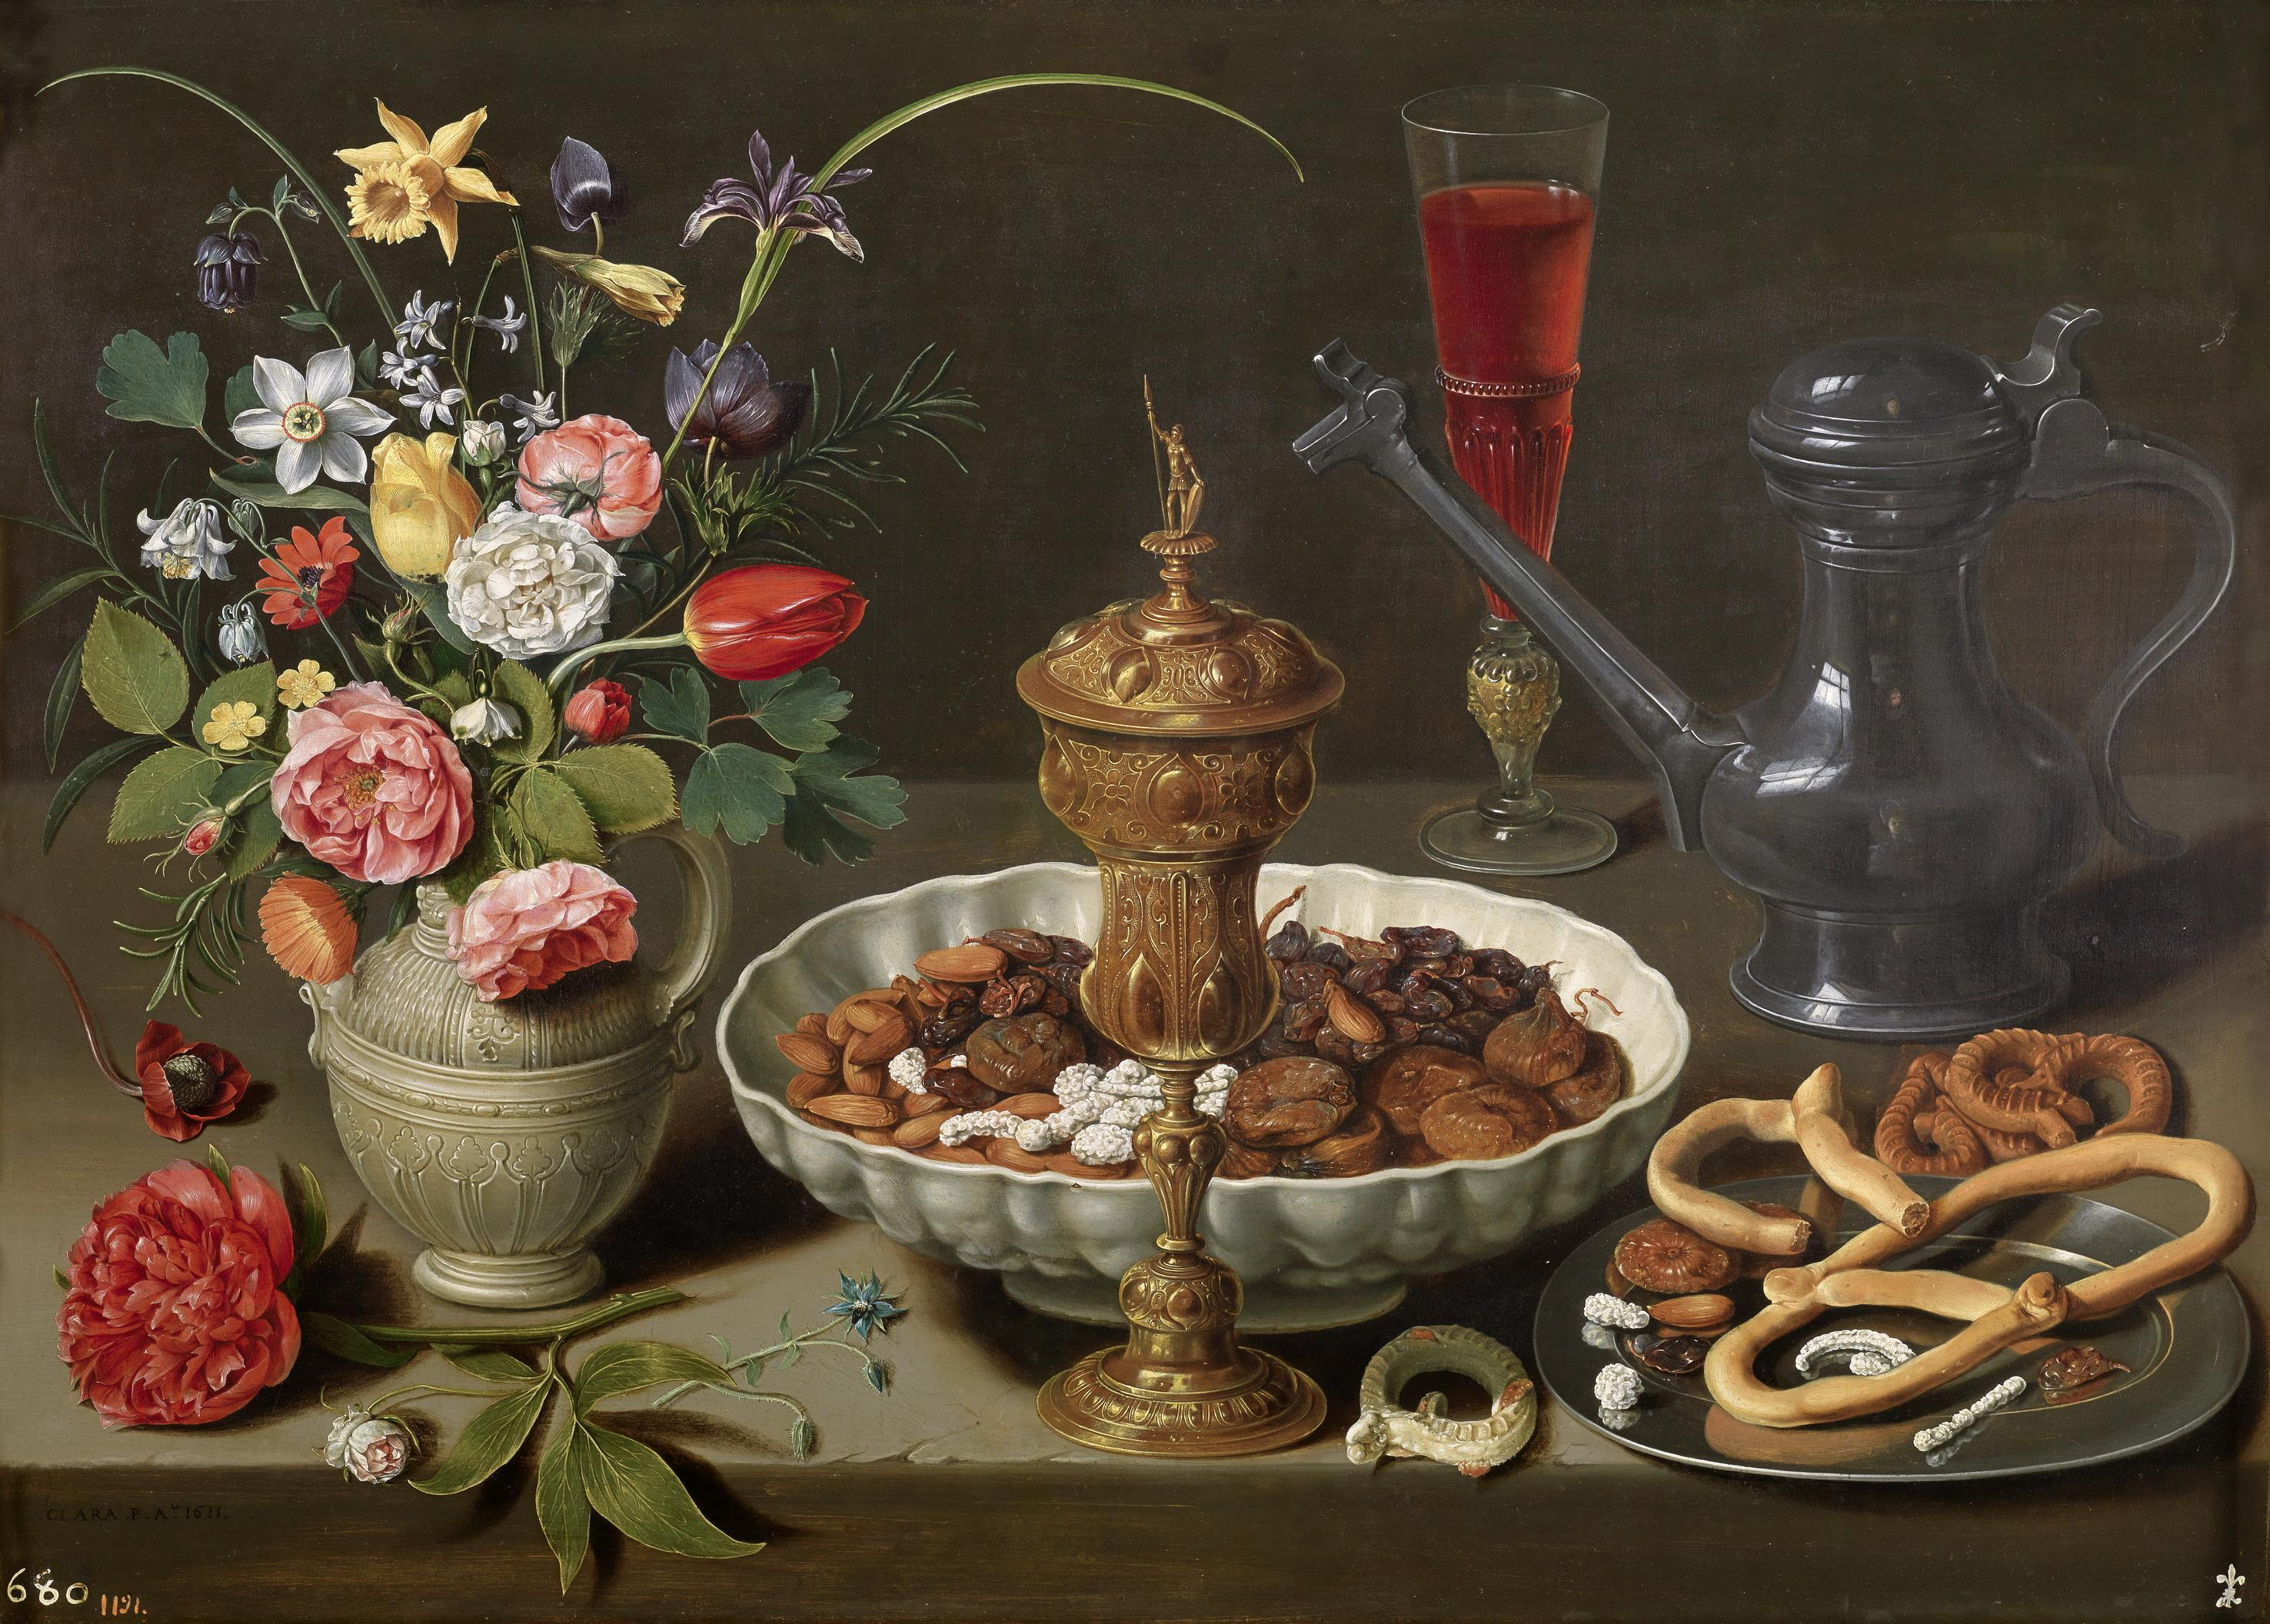 Clara Peeters - Still life with flowers, guilded Cup, Almonds, dried Fruit, Sweets Cookies, Wine and tin Jar - Oil on Pannel - ©Museo Nacional del Prado, Madrid